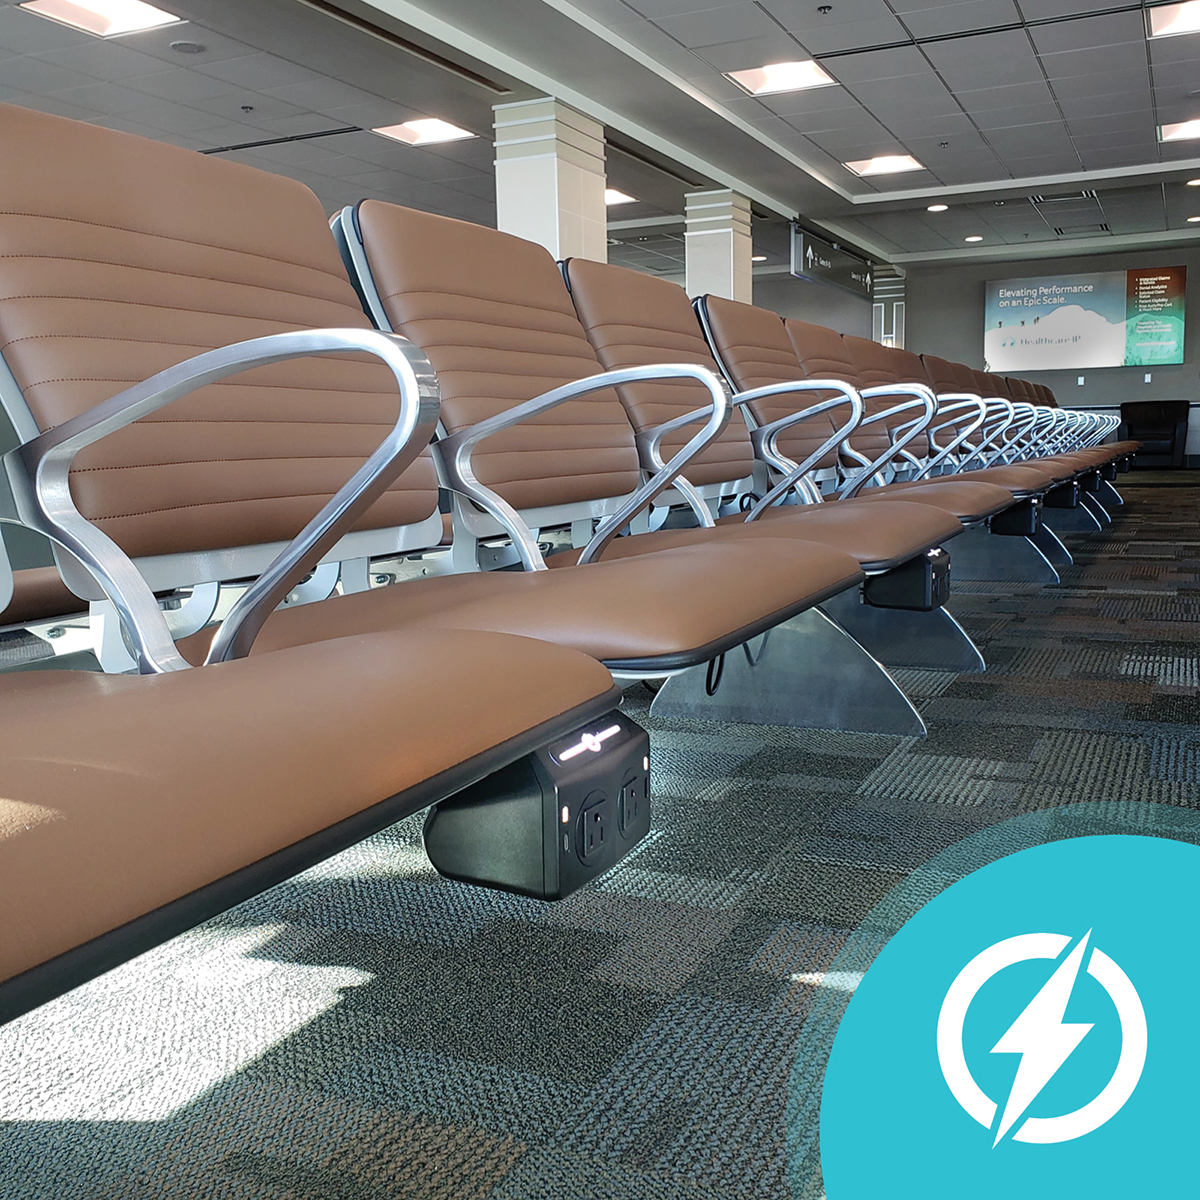 Is there anything more frustrating than your device dying at the airport? At MSN, you won't have to worry! We make it easy to charge all of your devices while you wait for your flight. On top of that, the new Gate 8 & 9 seating area has charging stations at almost every seat!